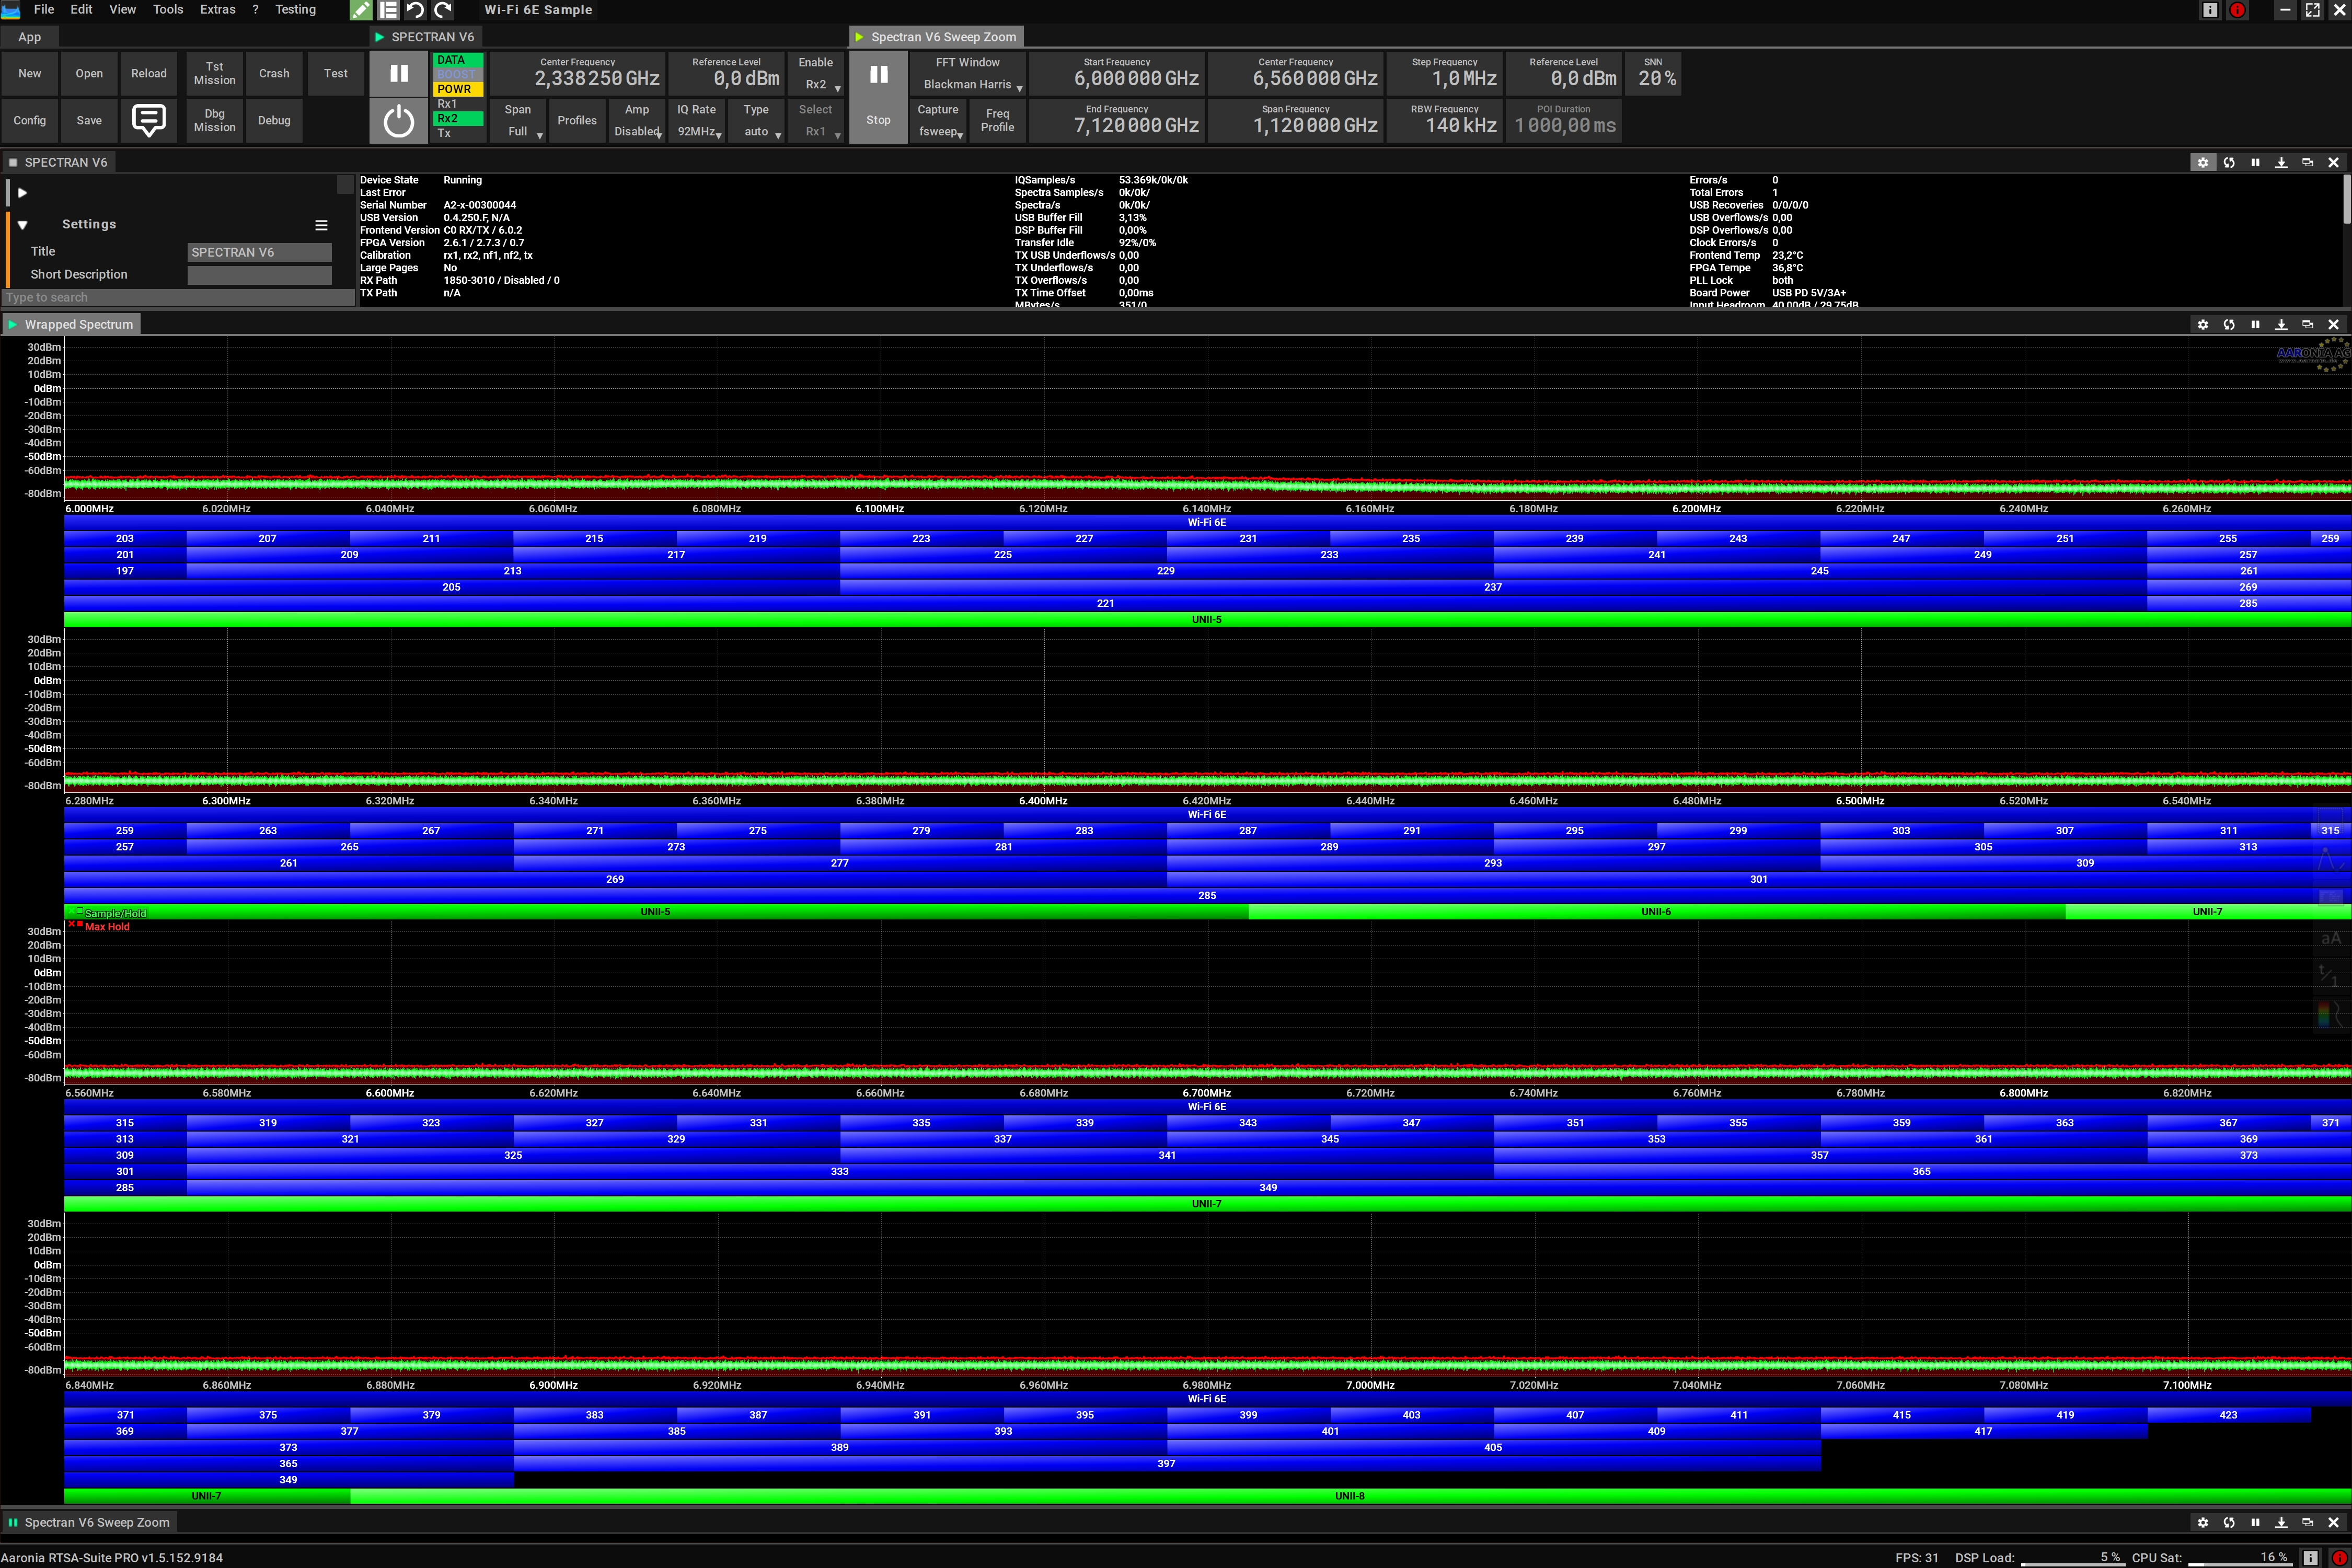 Wi-Fi 6E Frequency Band Monitoring